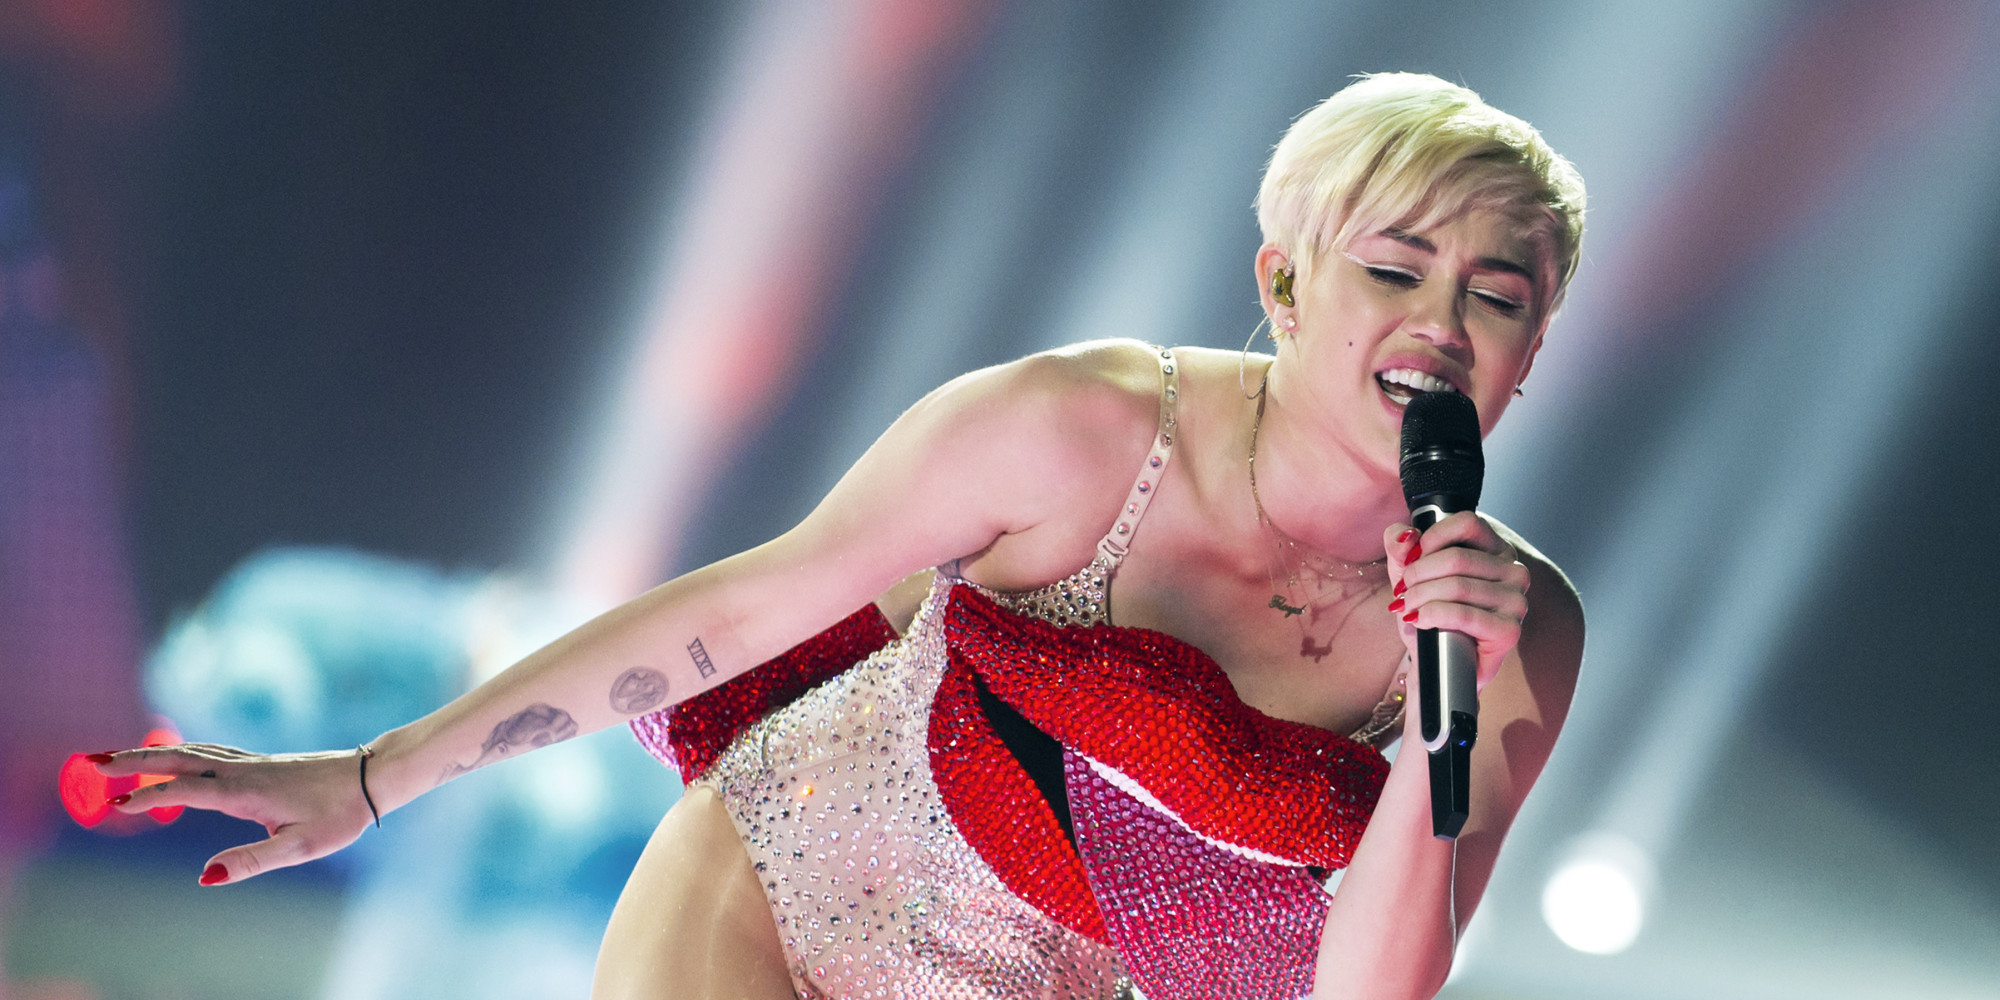 Miley Cyrus Naked Sucking Dick Classy miley cyrus sucking penis - sexpics.download - erotic and porn images